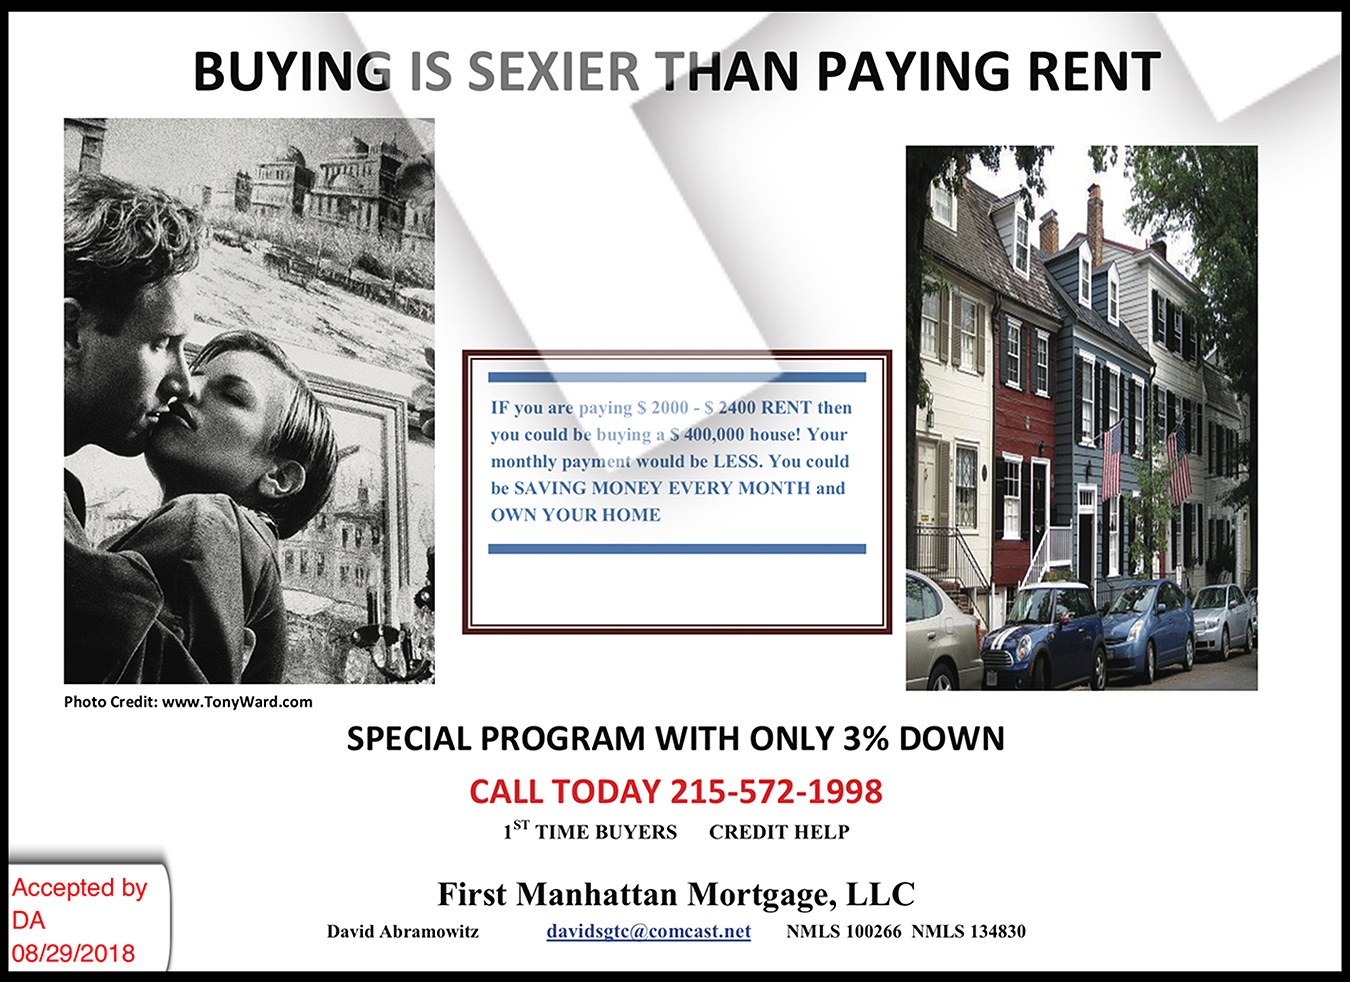 Tony_Ward_Studio_First_Manhattan_Mortgage_buyers_first_home_offer